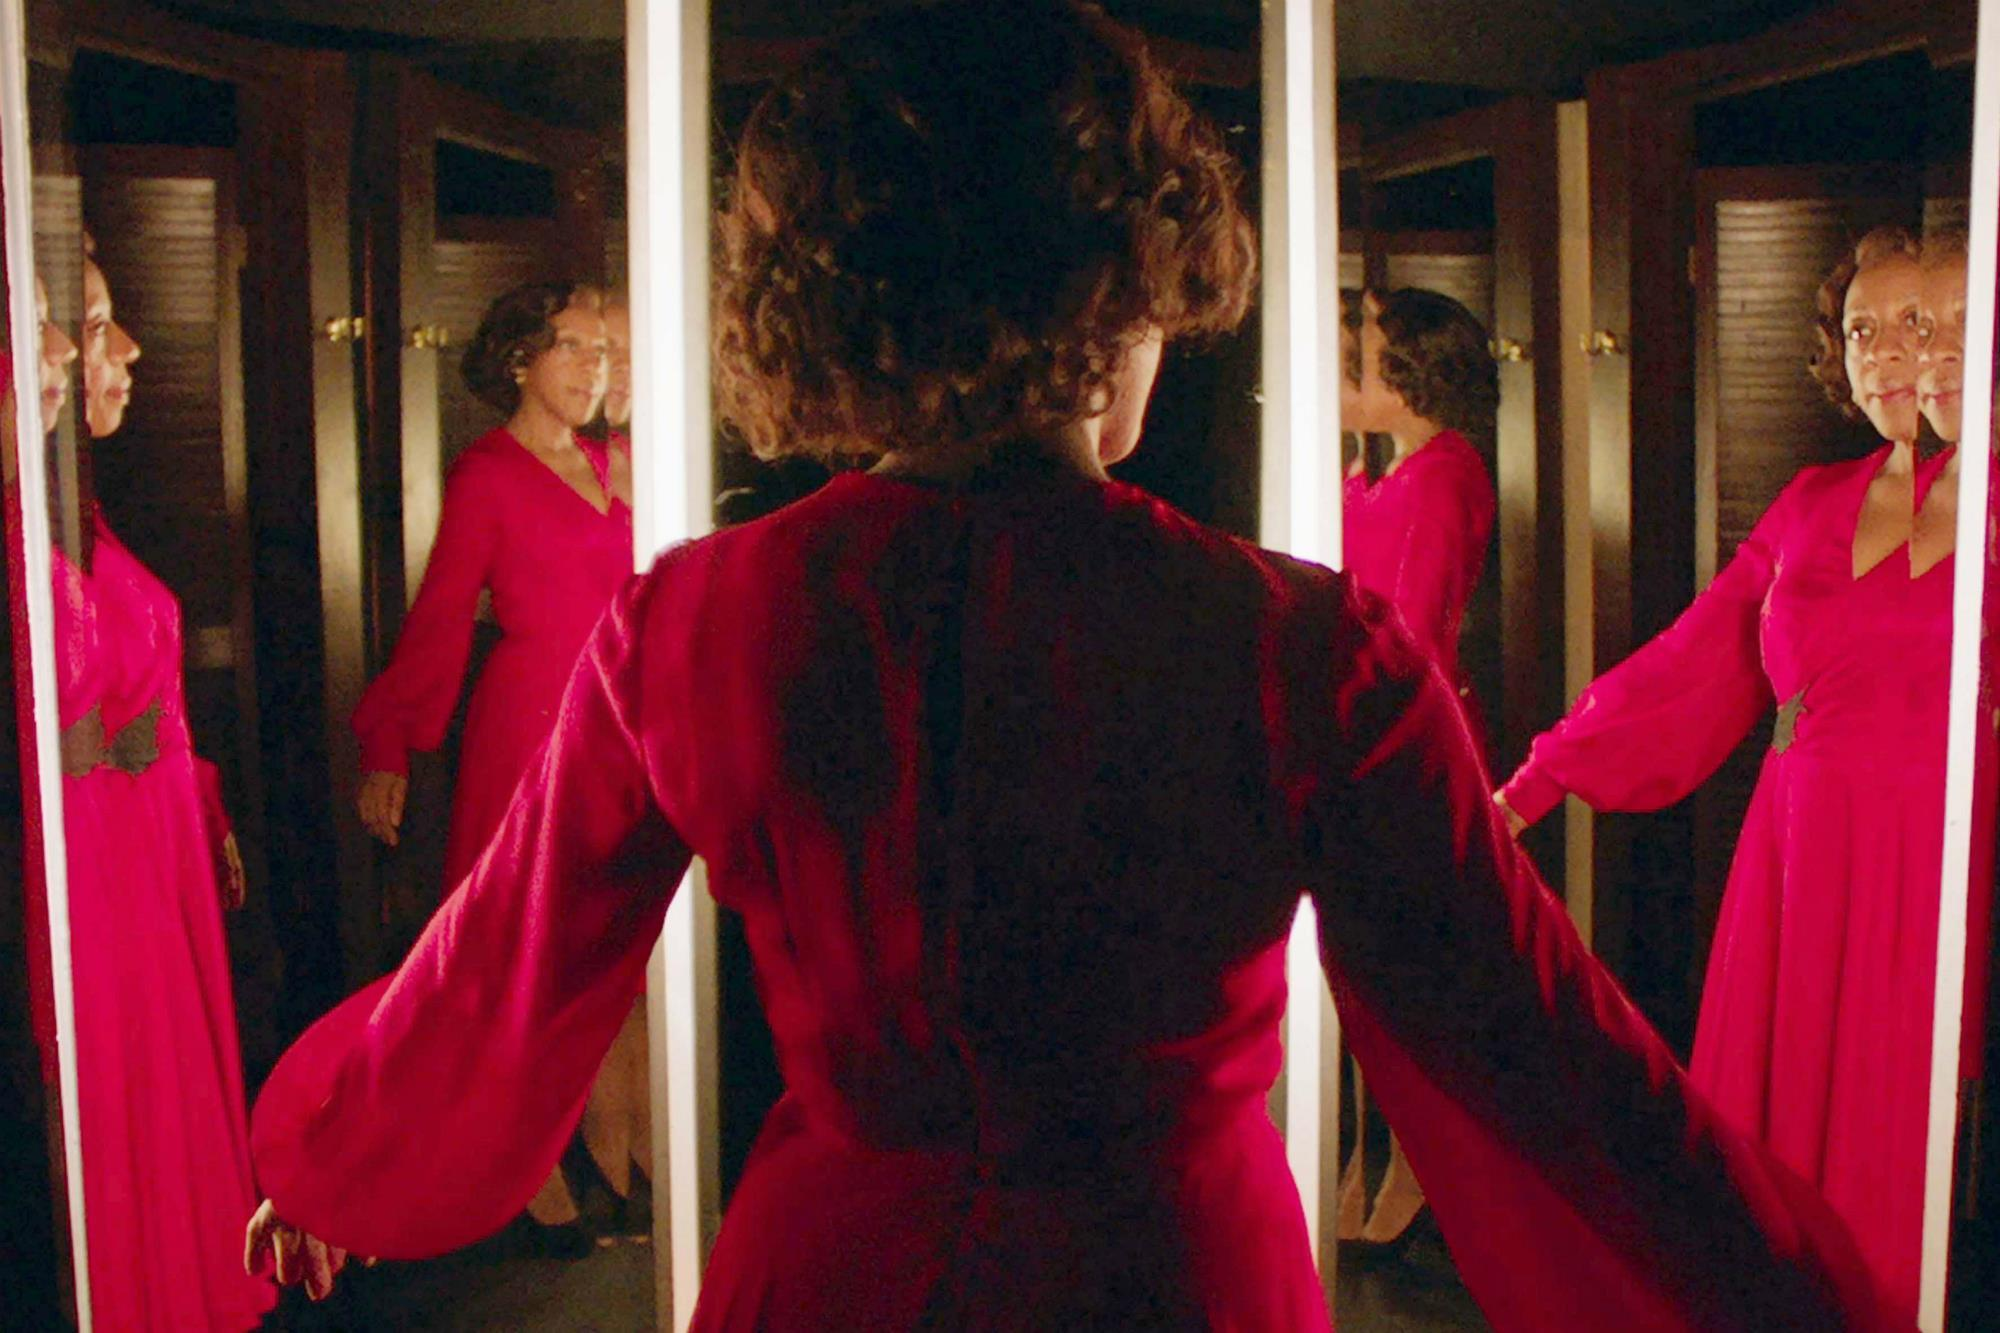 Peter Strickland's 'In Fabric' set report: